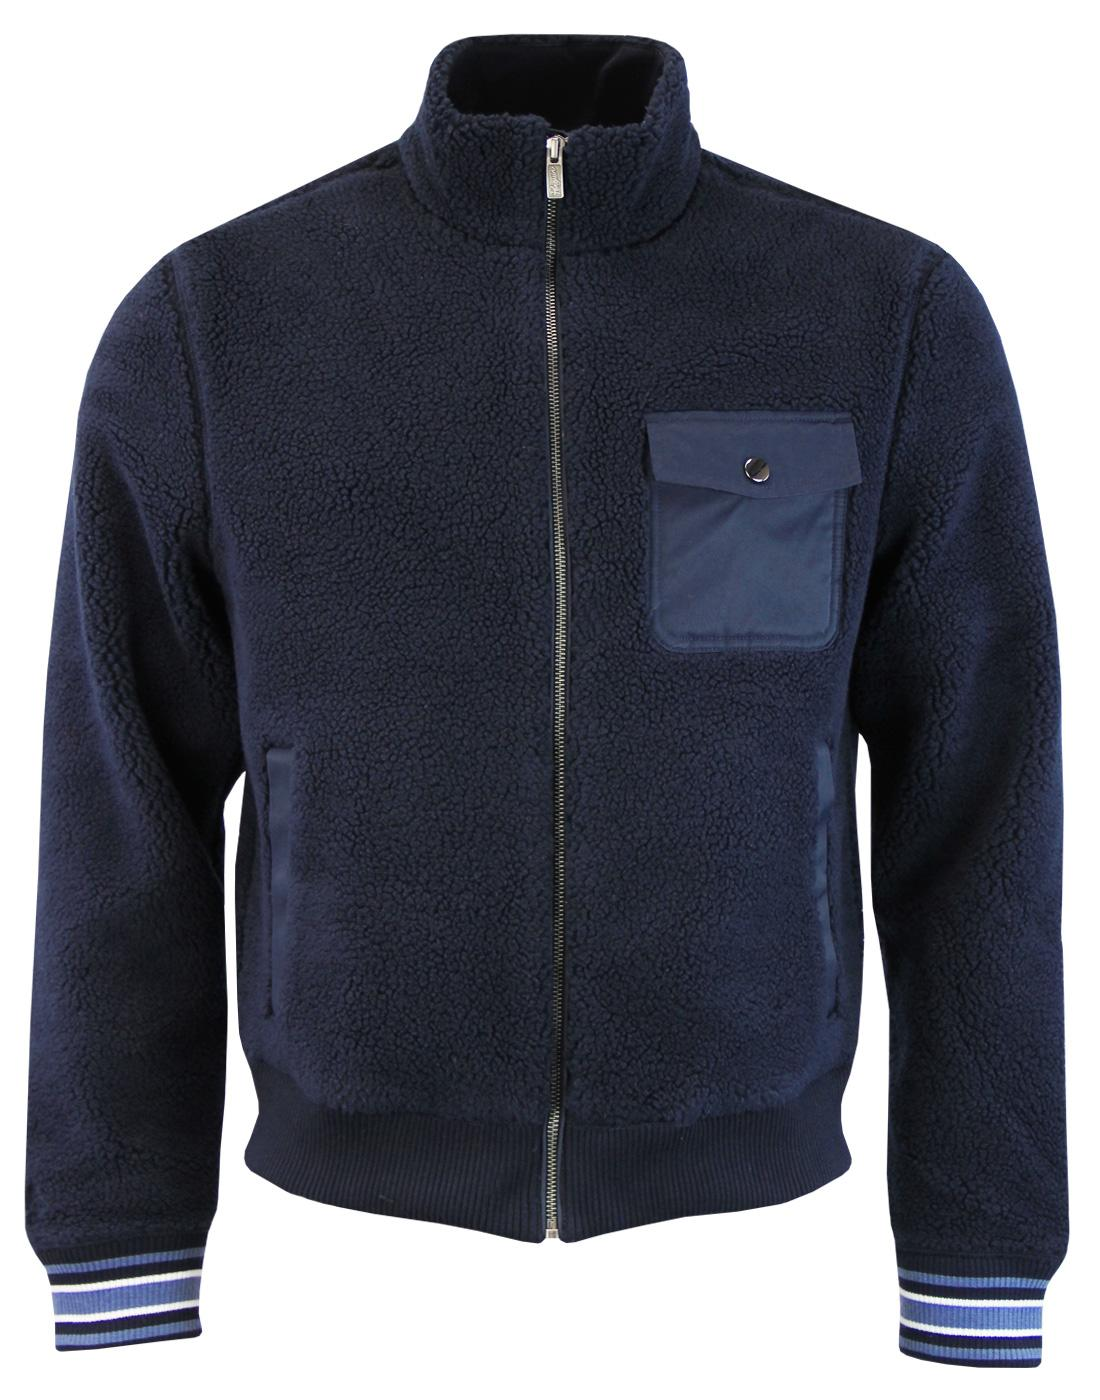 ORIGINAL PENGUIN Retro Teddy Fleece Bomber Jacket